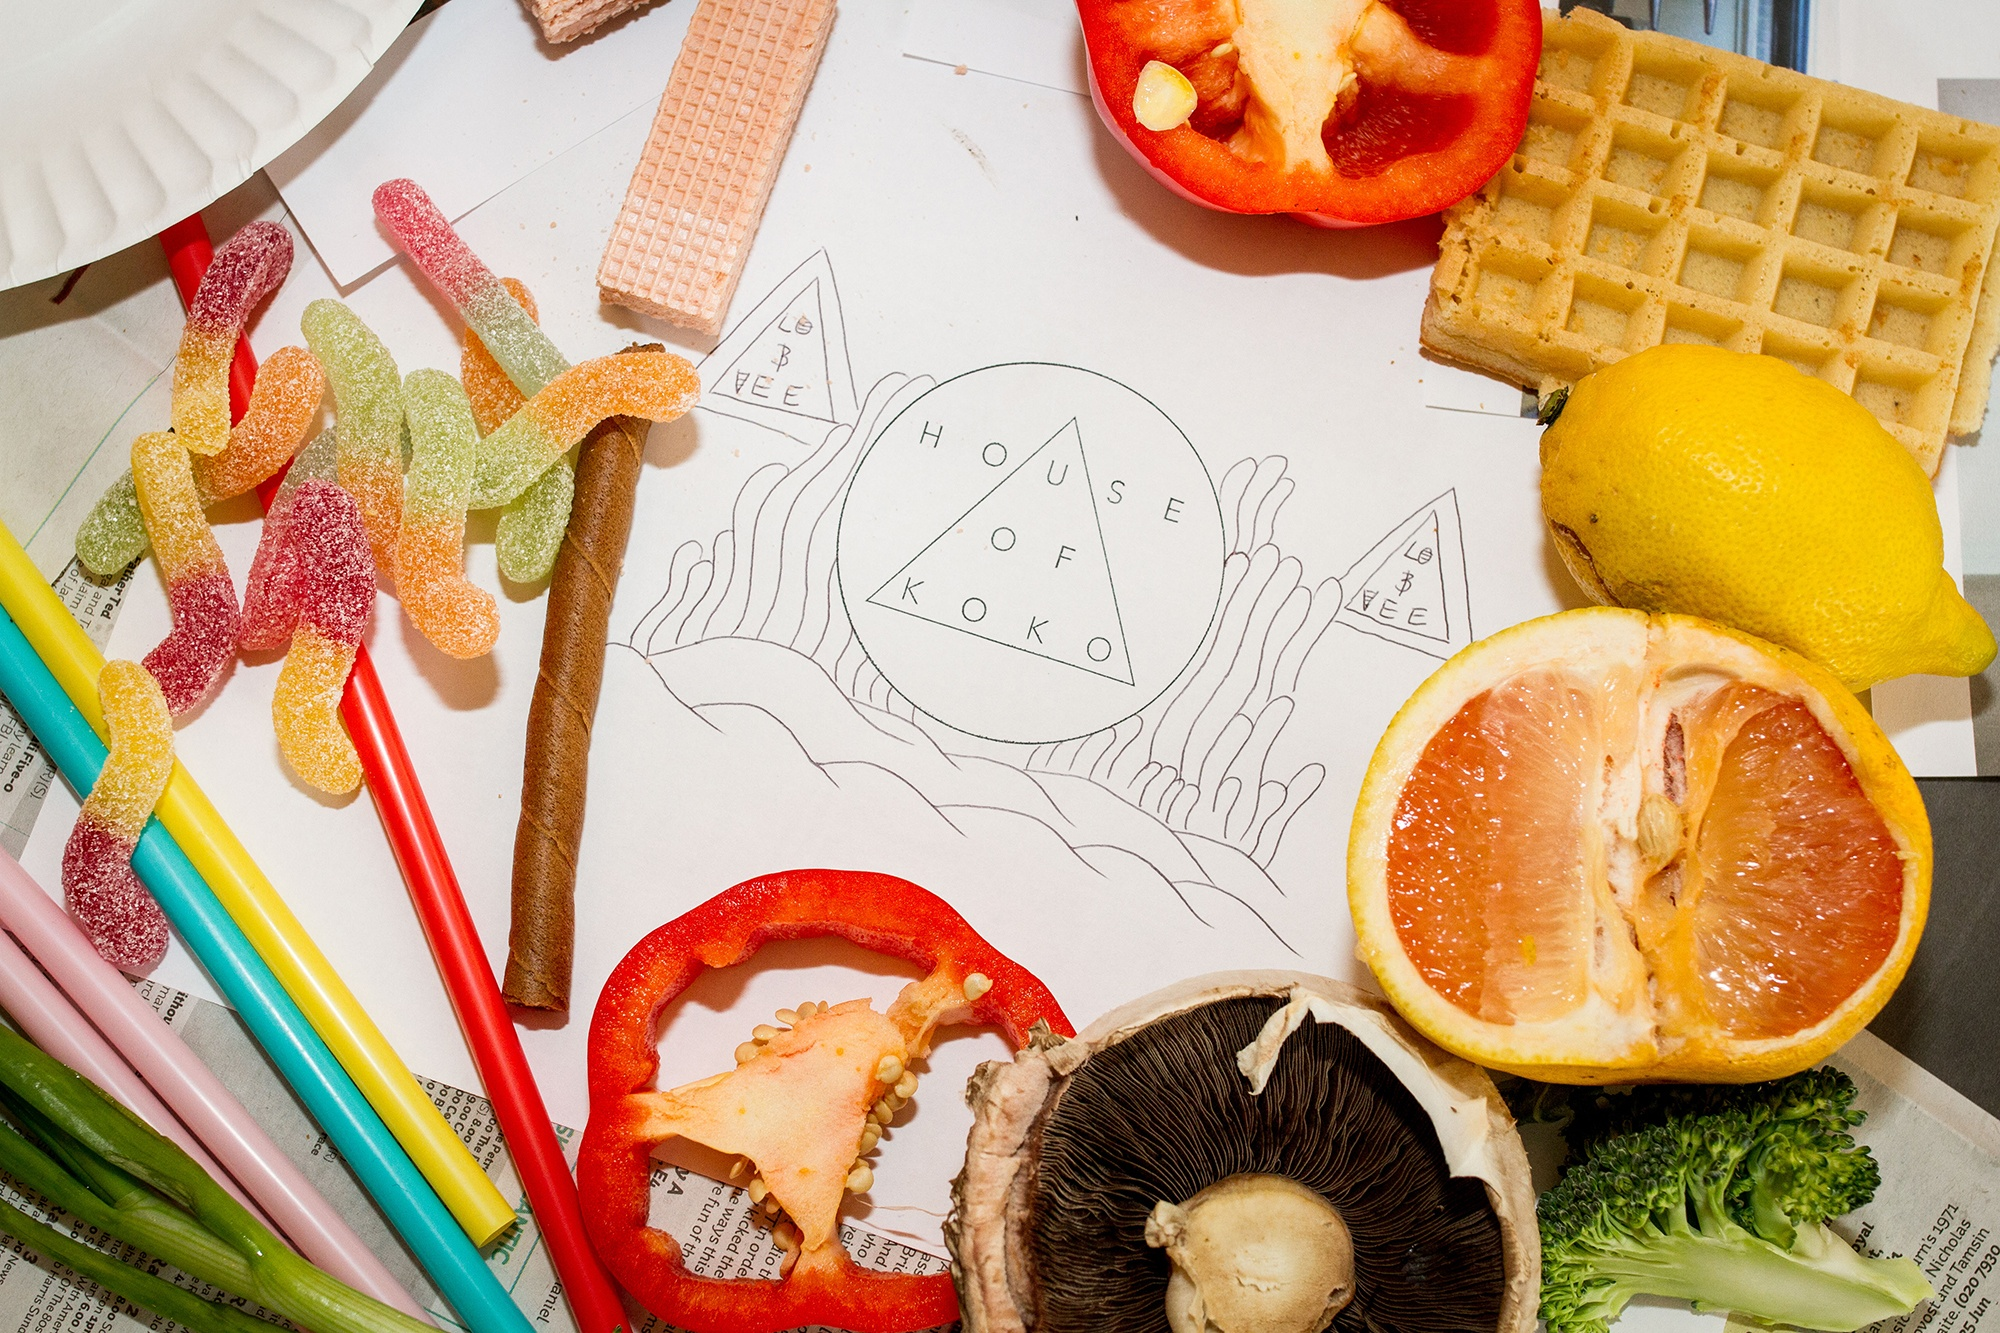 Creative Art Classes at House of Koko, Photography by Jessie Leong